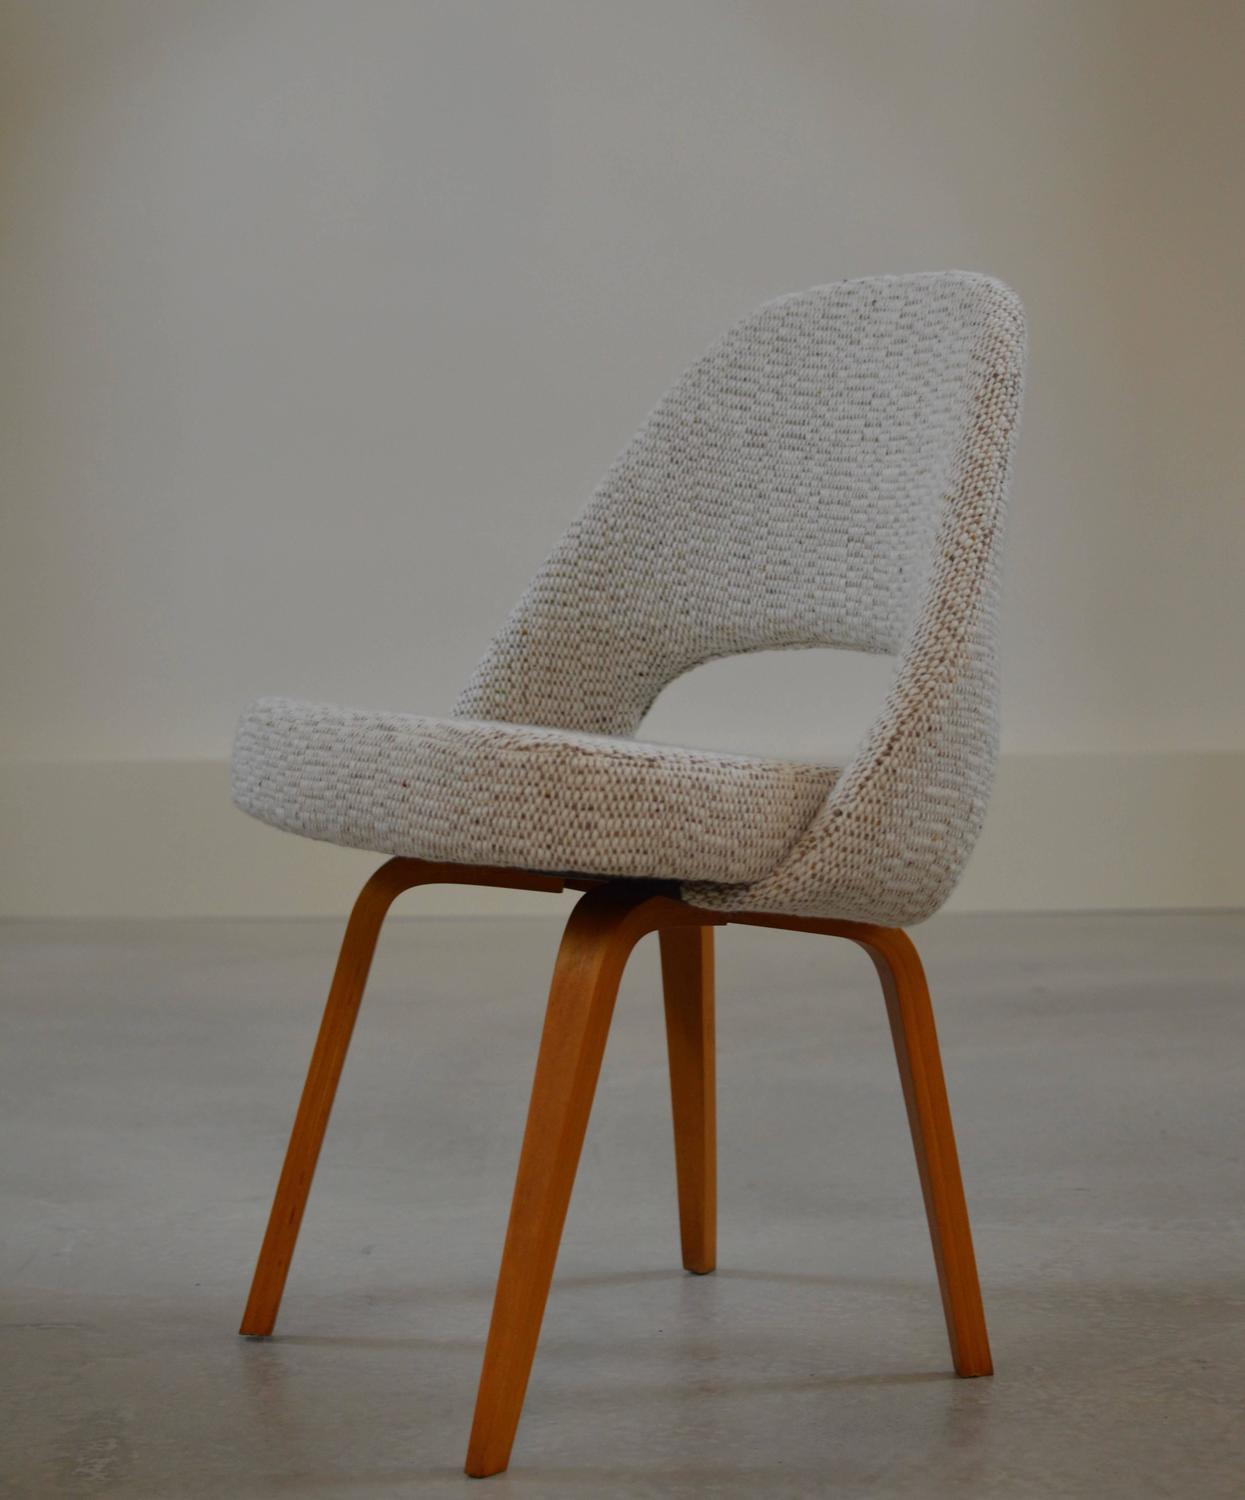 Early Saarinen Executive Chairs With Wooden Legs For Sale At 1stdibs